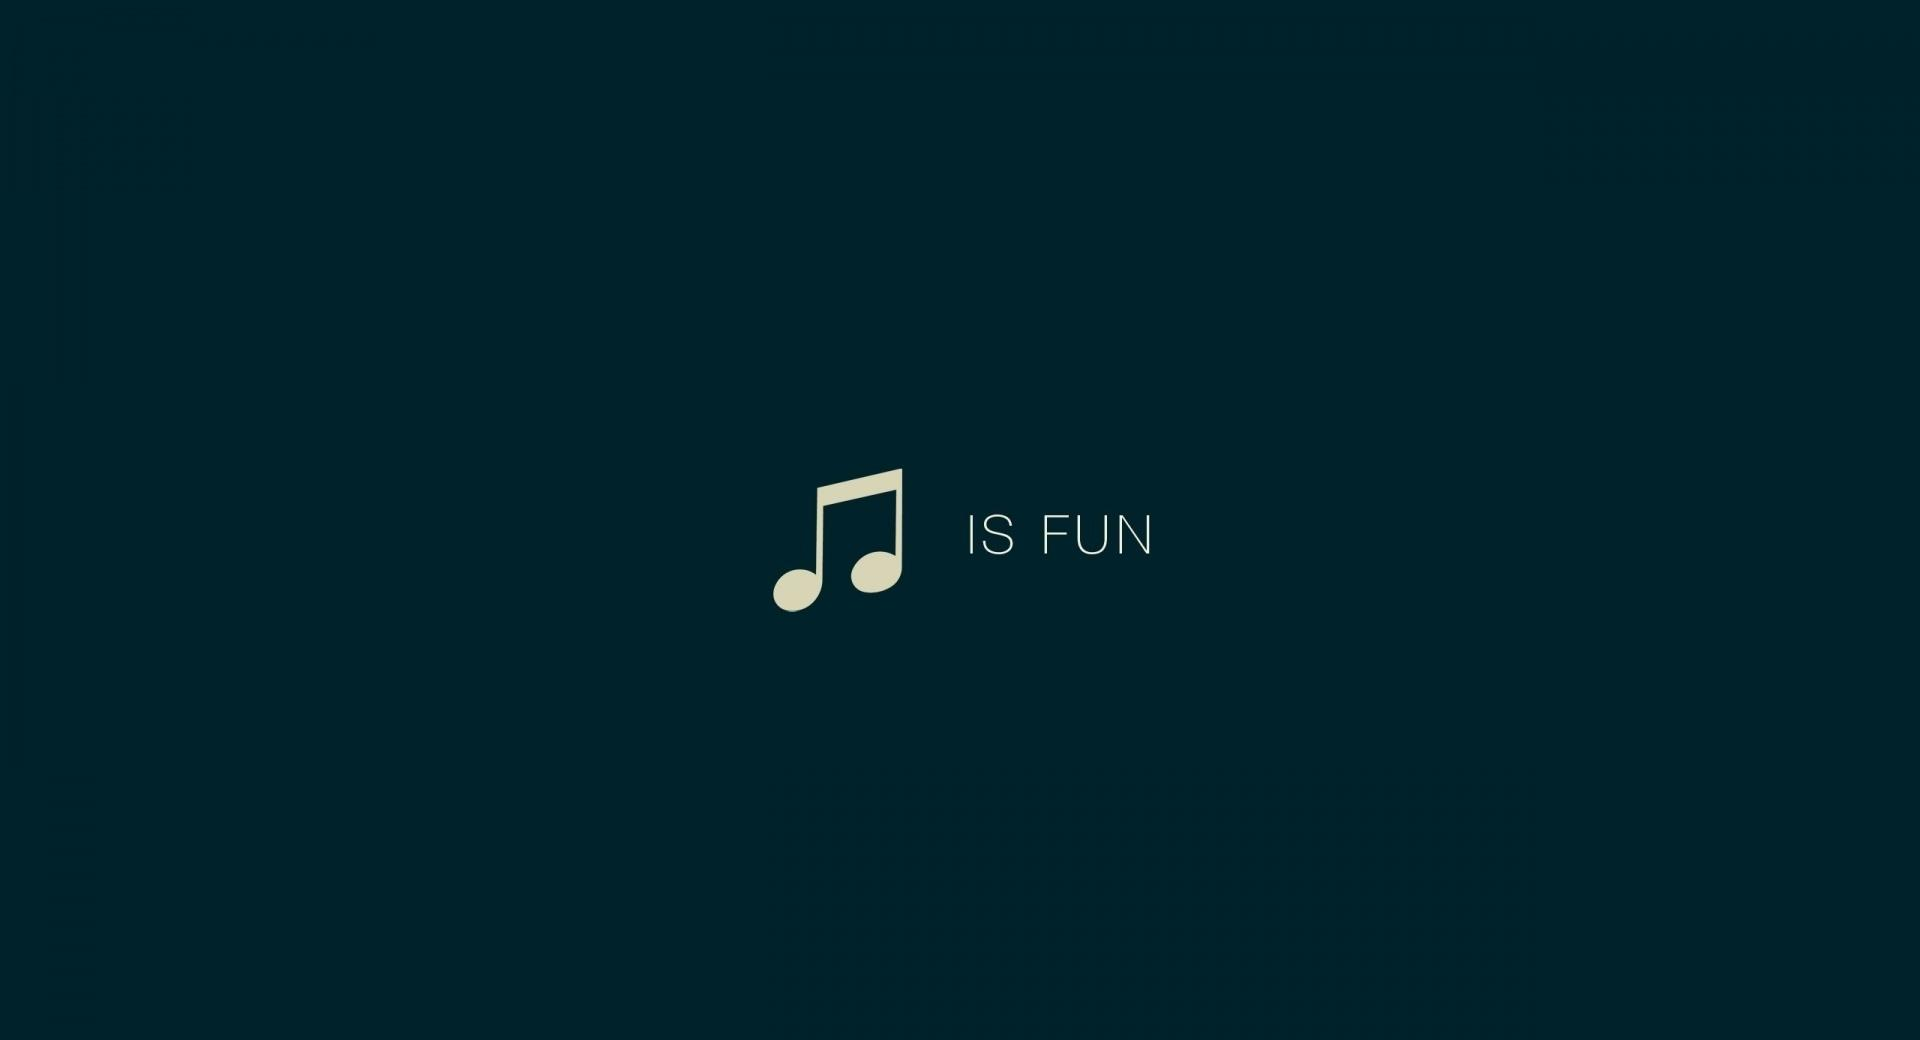 Music Is Fun wallpapers HD quality